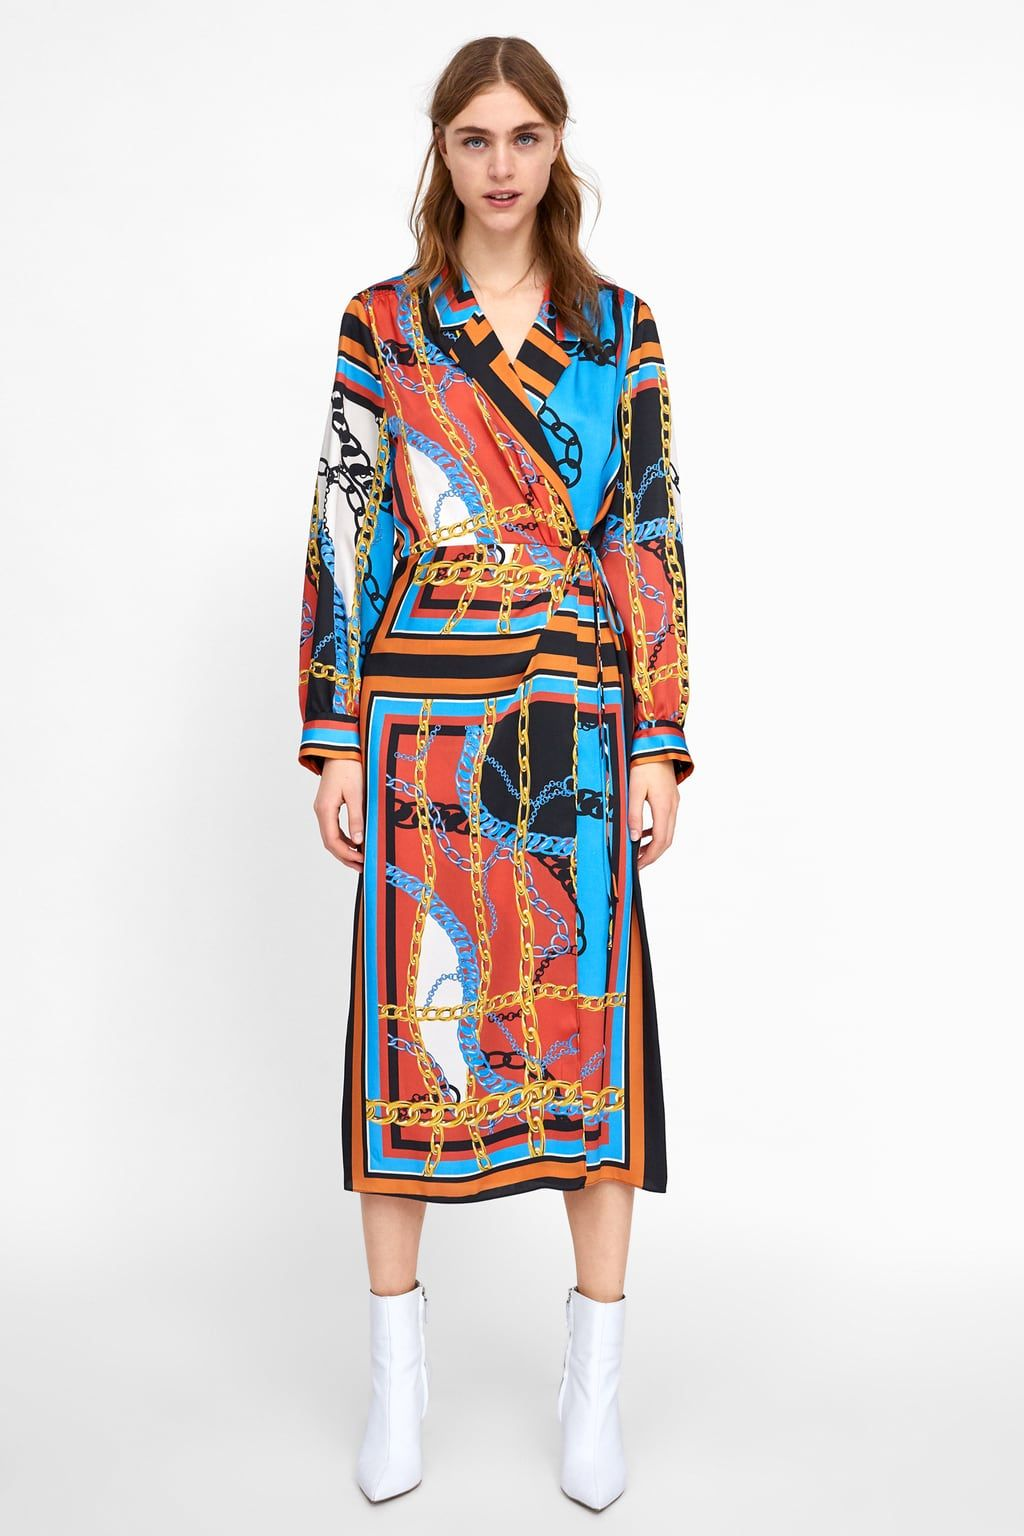 92045b72 Image 1 of CHAIN PRINT DRESS from Zara | Projects to try in 2019 ...